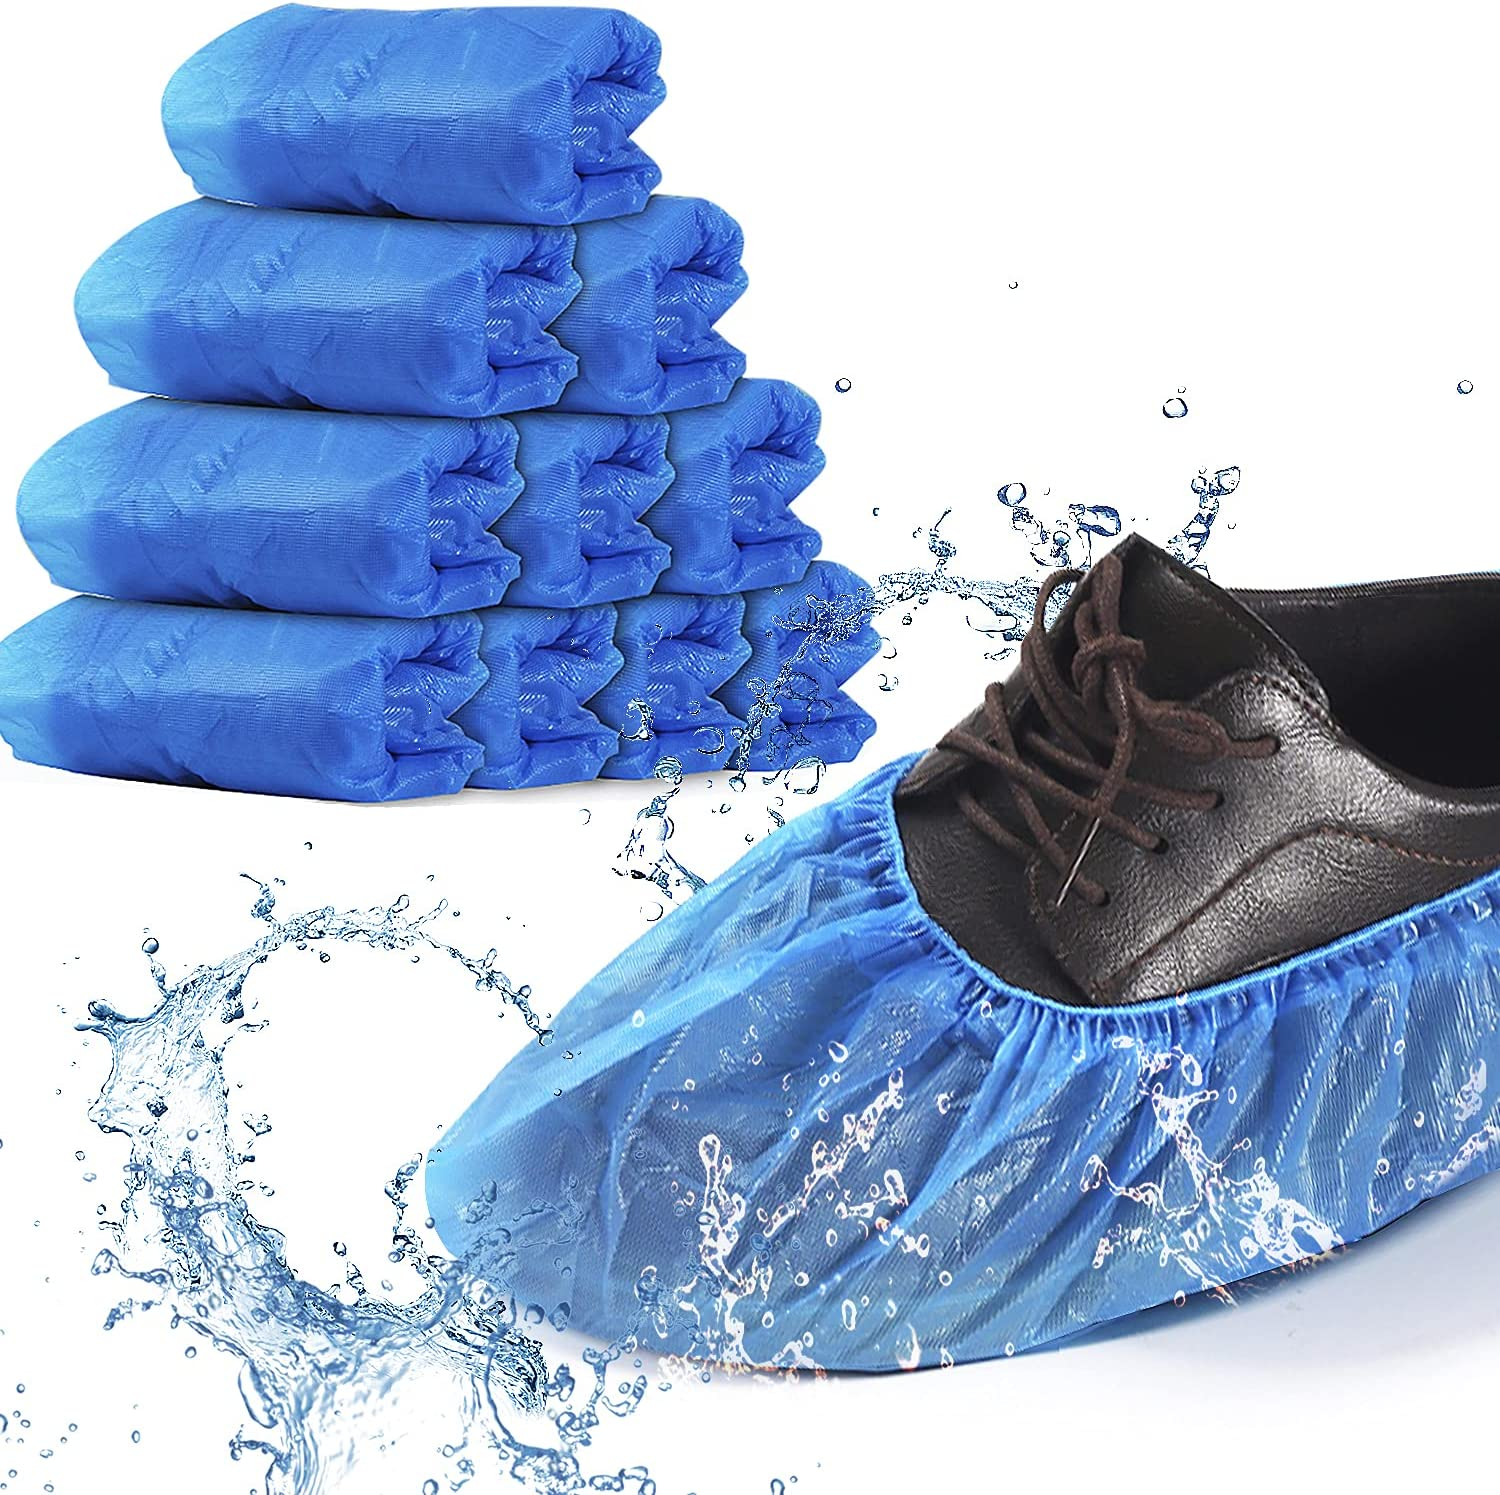 Hitituto Shoe Covers Disposable -100 Pack (50 Pairs) Disposable Shoe & Boot Covers Waterproof Slip Resistant Non Slip, Durable Boot&Shoes Cover, One Size Fits All (Clear Blue) (CPE Plastic)